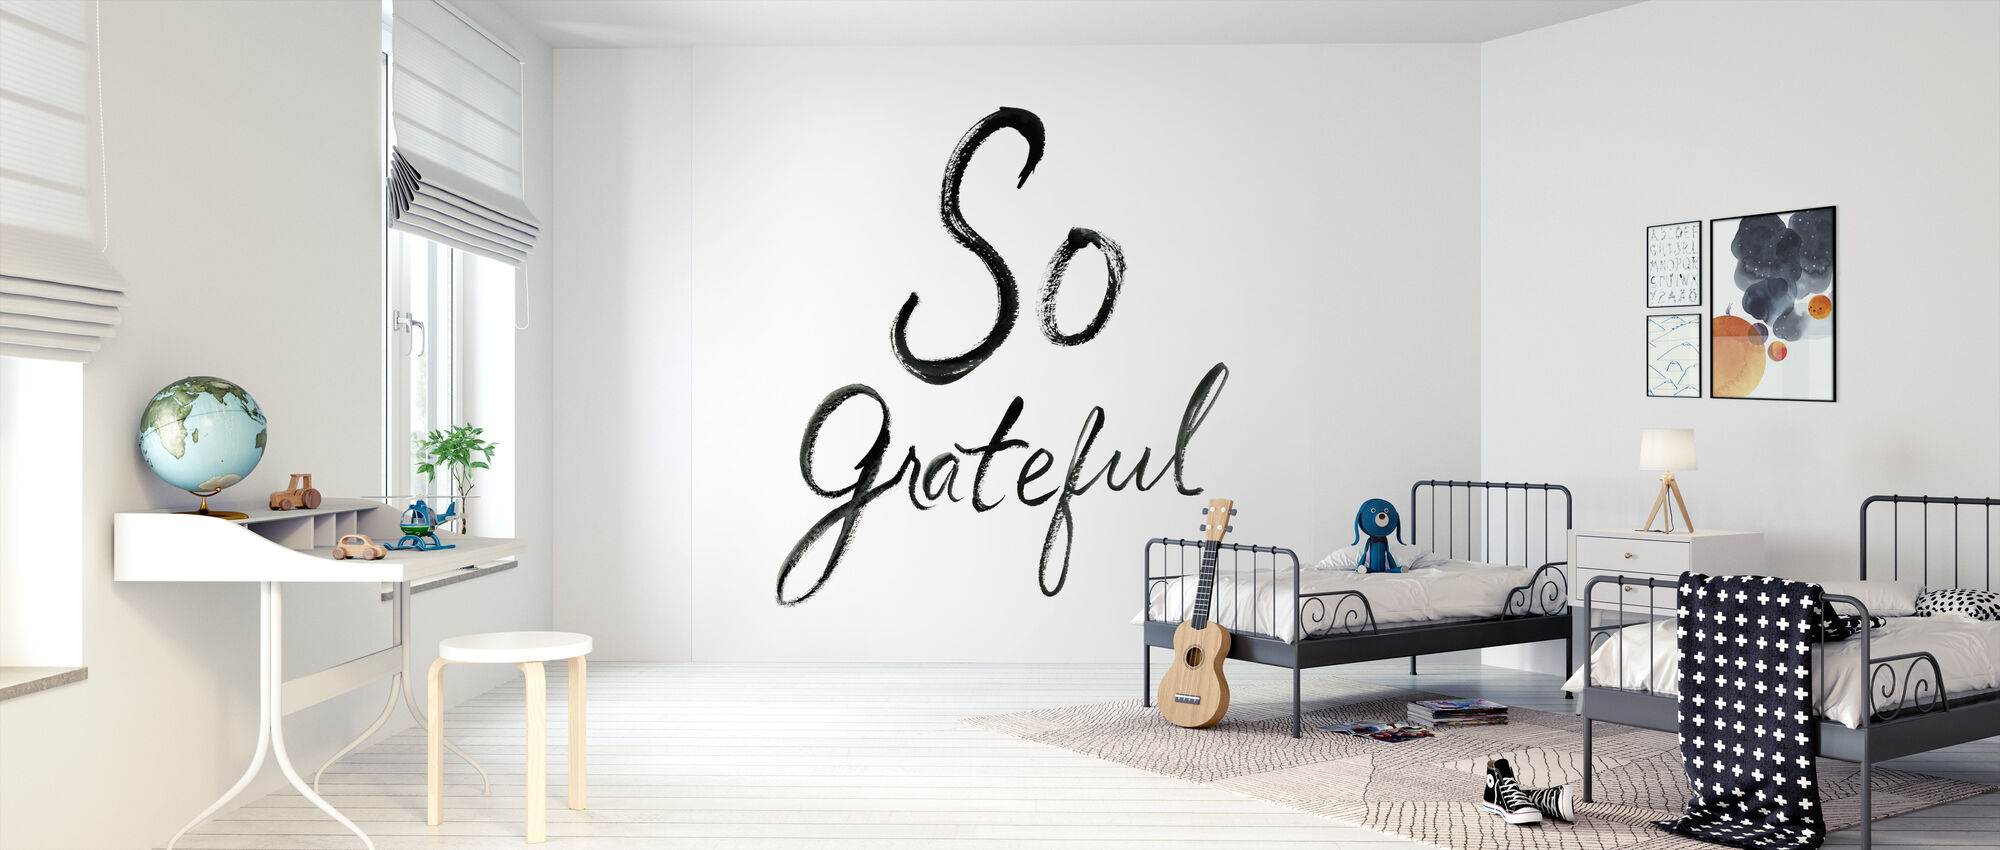 So Grateful - Wallpaper - Kids Room